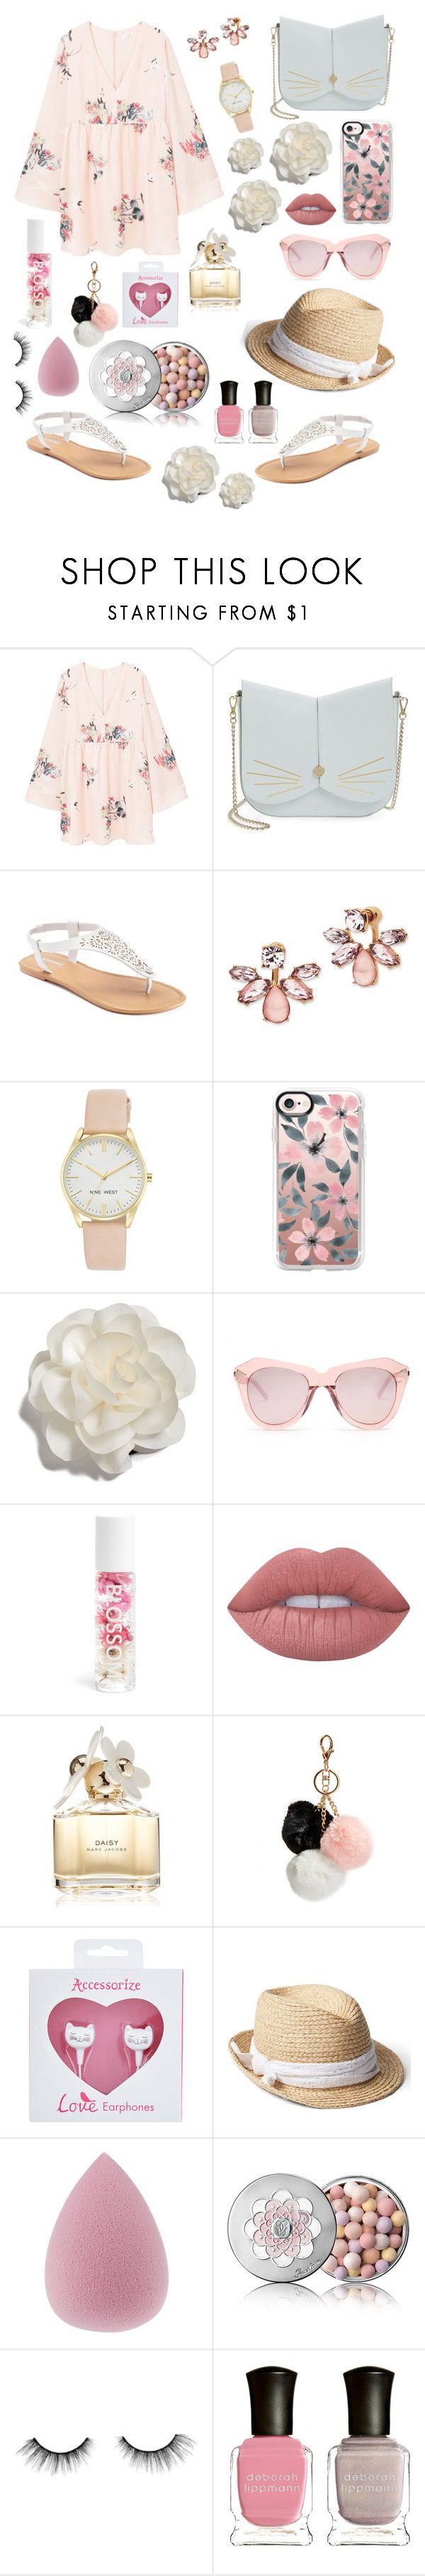 """💐"" by pashion-for-fashionn ❤ liked on Polyvore featuring MANGO, Ted Baker, SONOMA Goods for Life, Marchesa, Nine West, Casetify, Cara, Karen Walker, Lime Crime and Marc Jacobs"